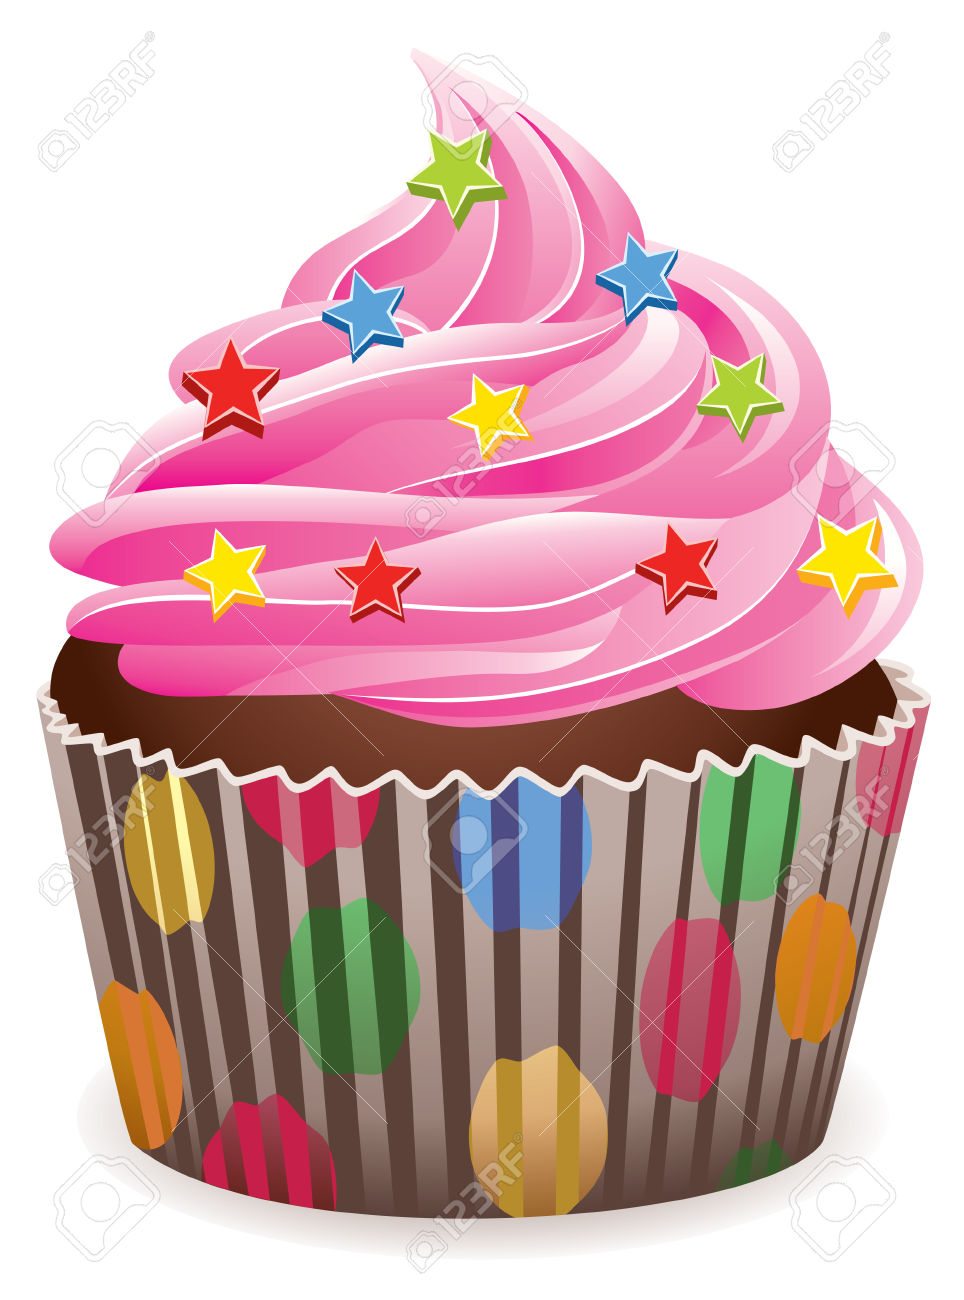 Fairy cakes clipart 6 » Clipart Station.